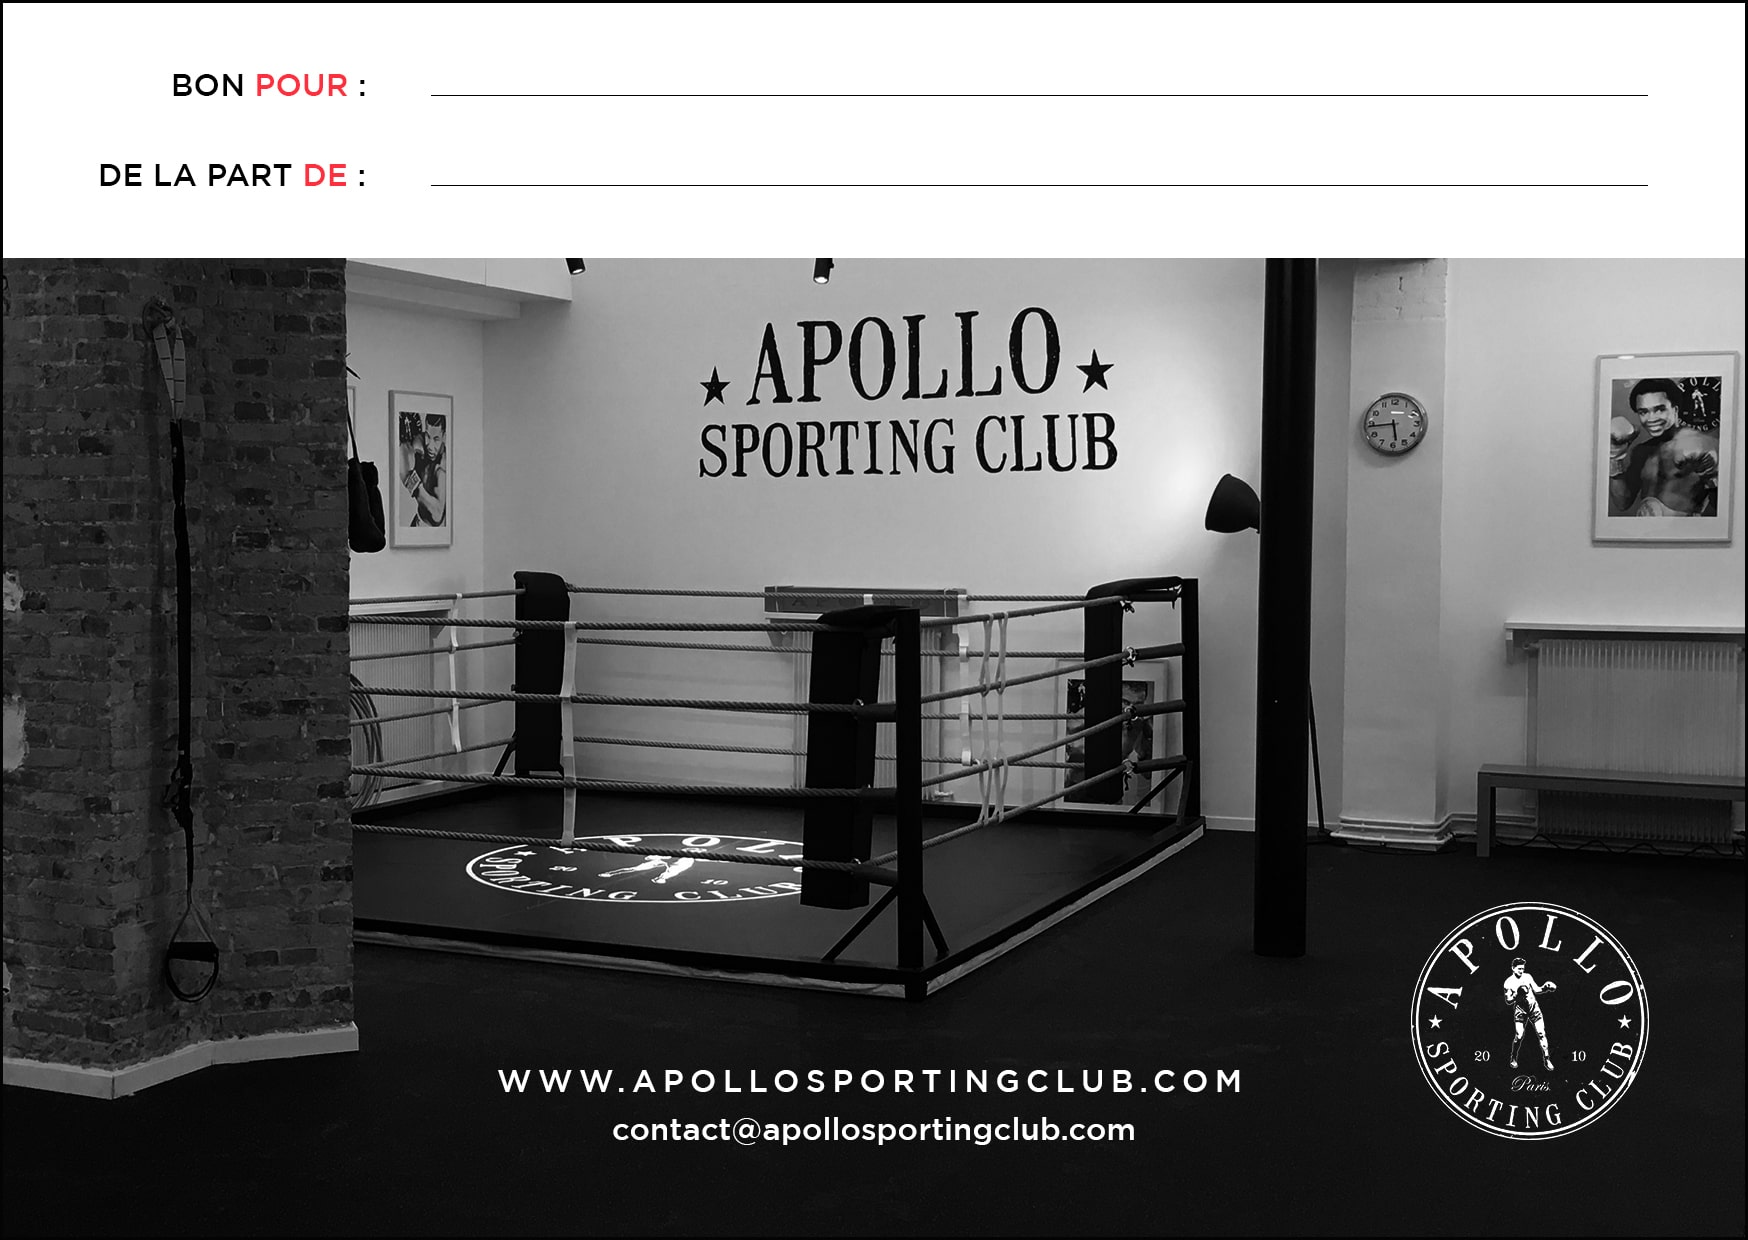 Image Actu Apollo Sporting Club